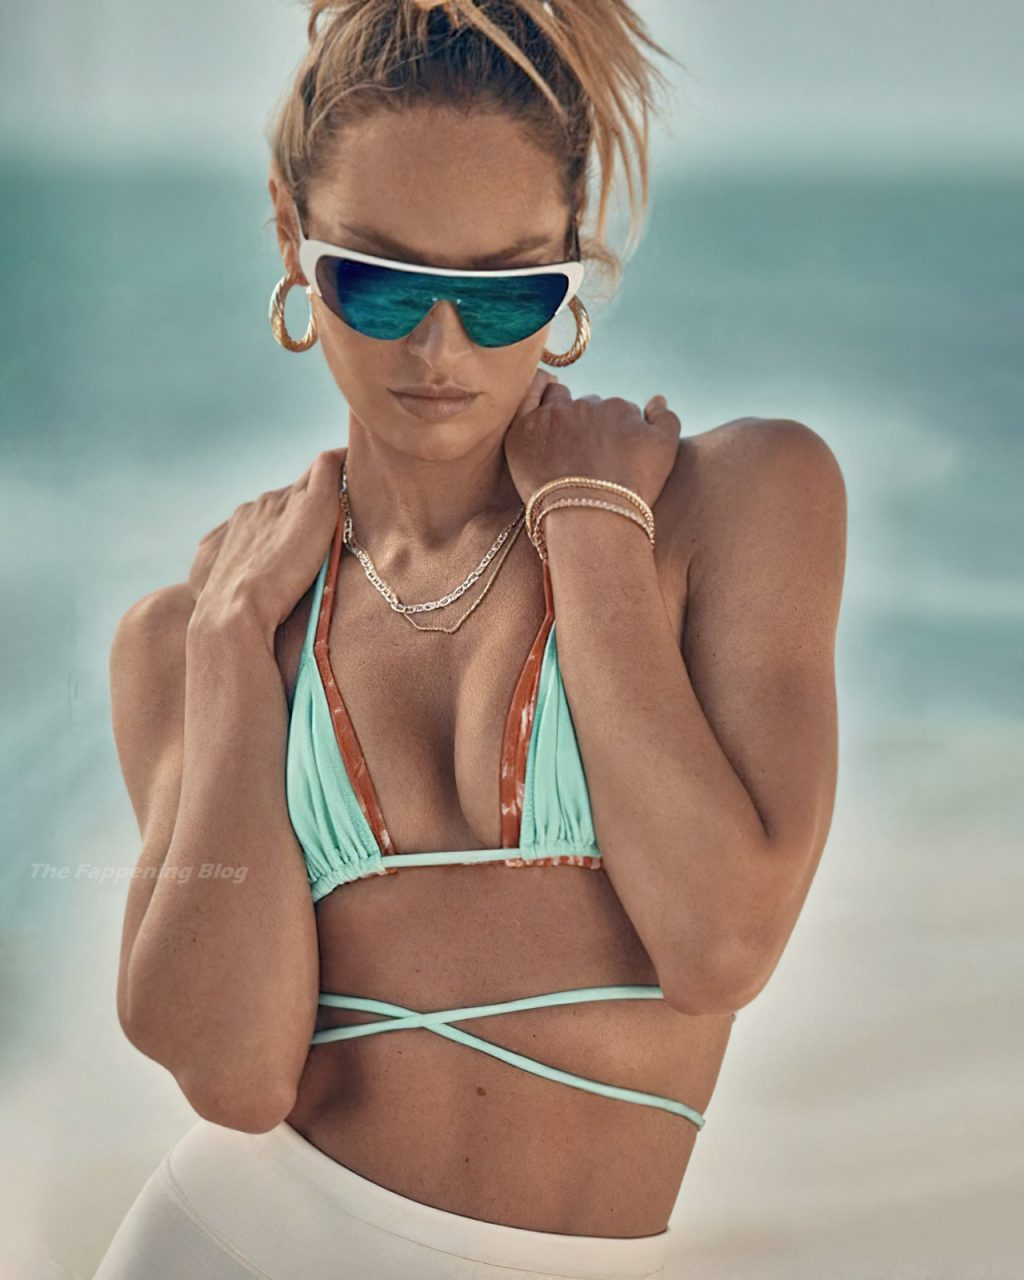 Candice Swanepoel Poses for a New Swimwear Campaign (12 Photos)